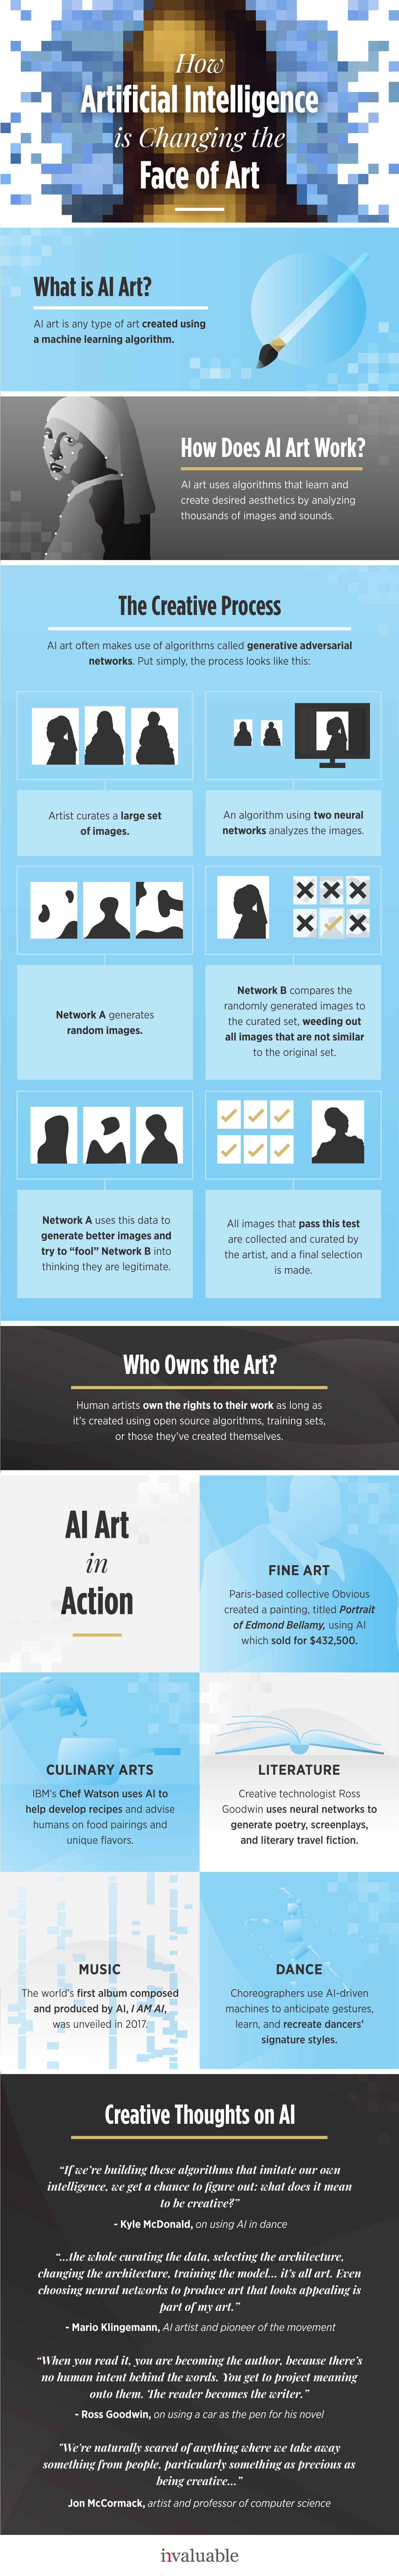 AI in Arts infographic